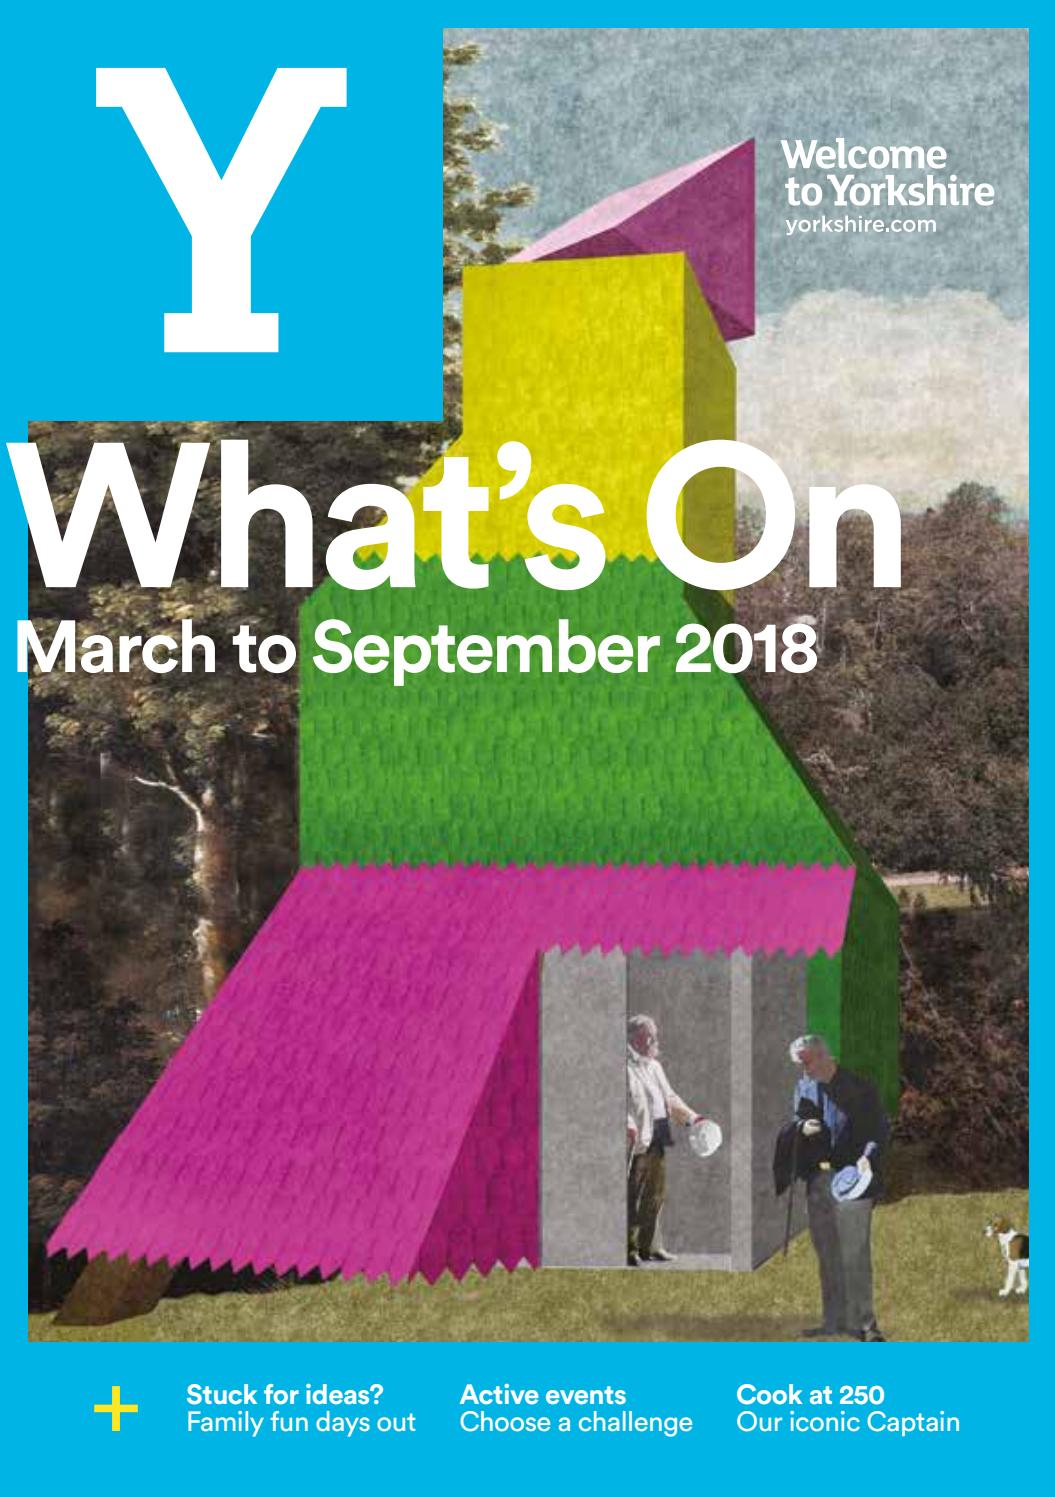 Yorkshire Whats On Guide 2018 By Welcome To Issuu Singapore Wings Of Time Show 1940 Voucher